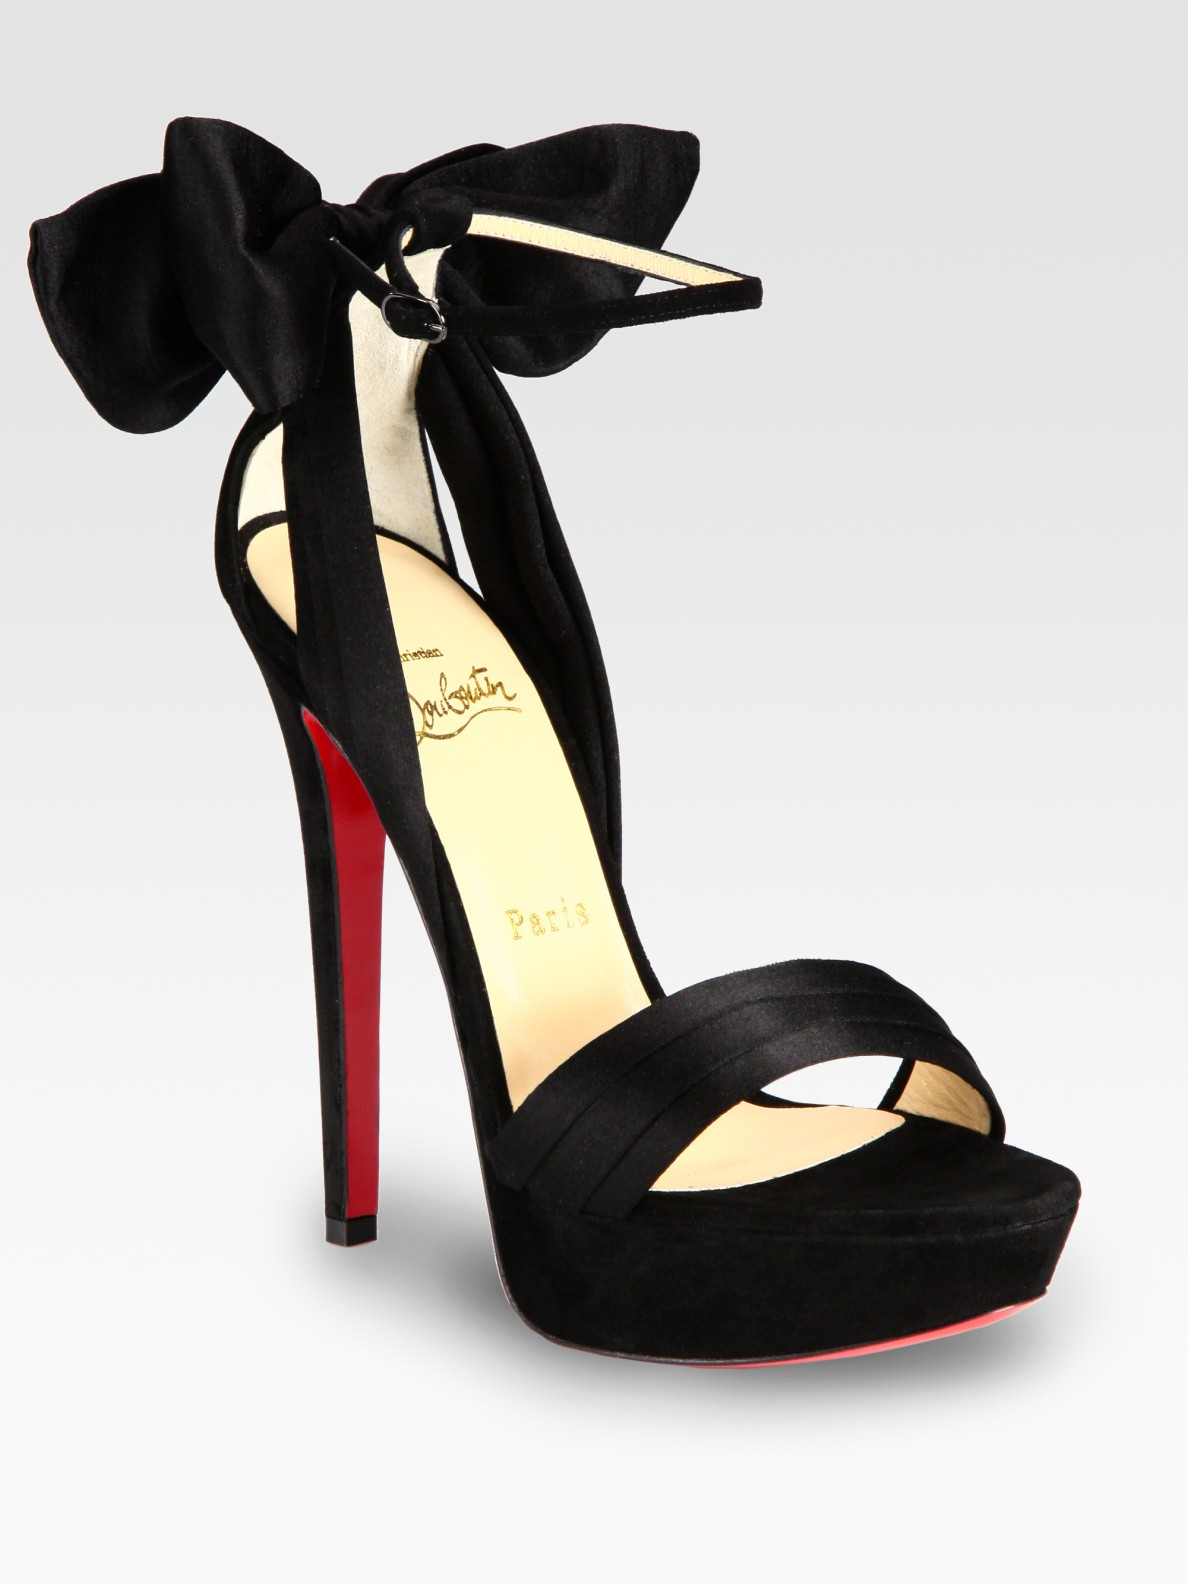 christian louboutin shoes high heels latest arrivals 2014. Black Bedroom Furniture Sets. Home Design Ideas